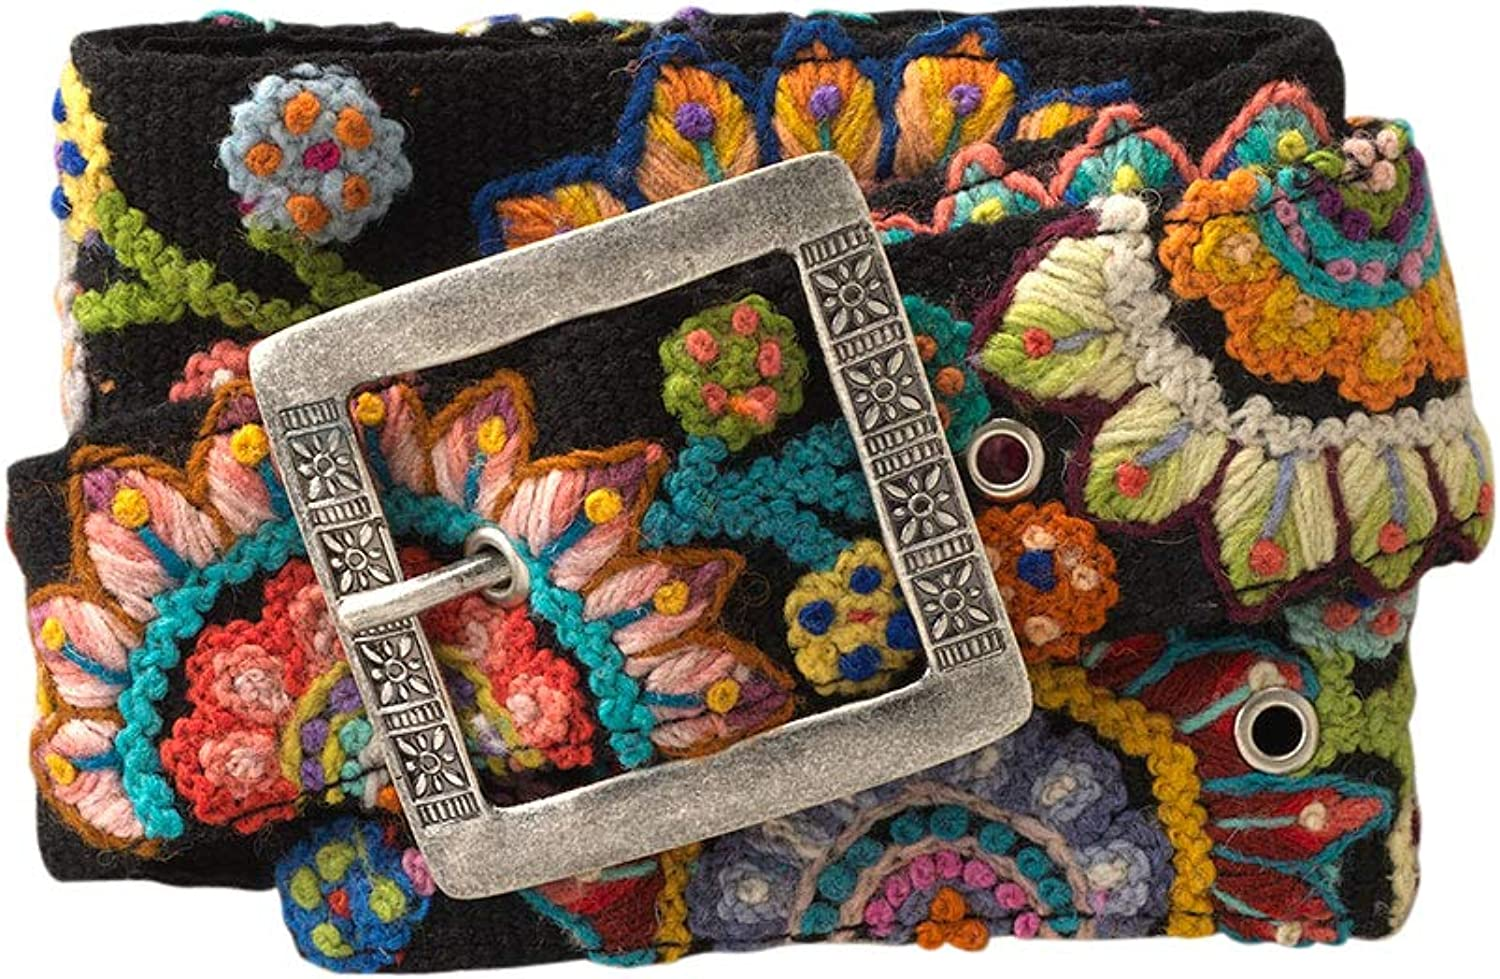 Tey Art Sun Burst Hand Trade Belt Embroidered Limited time trial price Fair Wool Very popular!